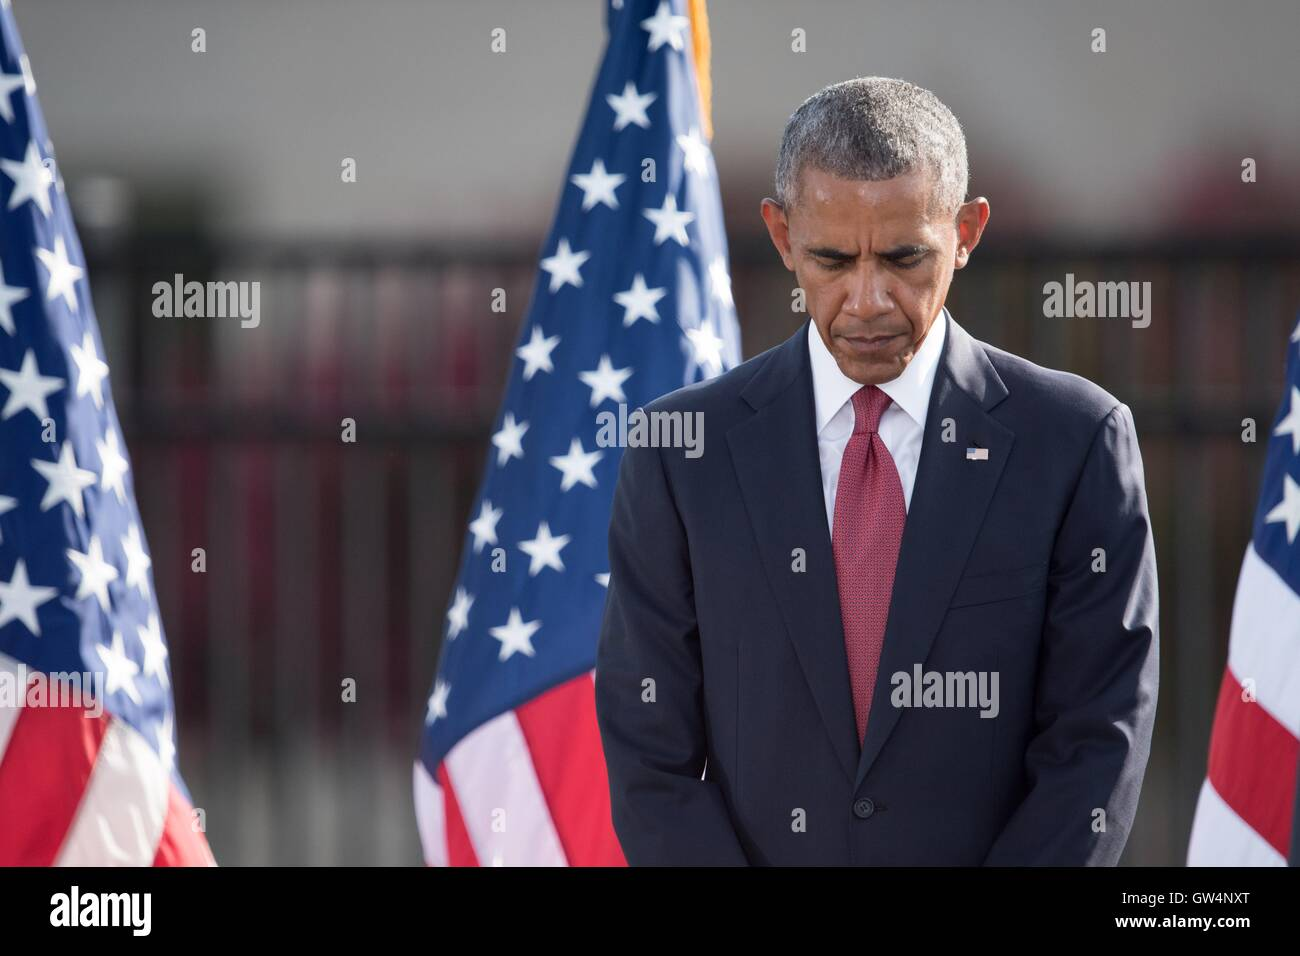 U.S President Barack Obama bows his head during a moment of silence at a remembrance ceremony commemorating the - Stock Image